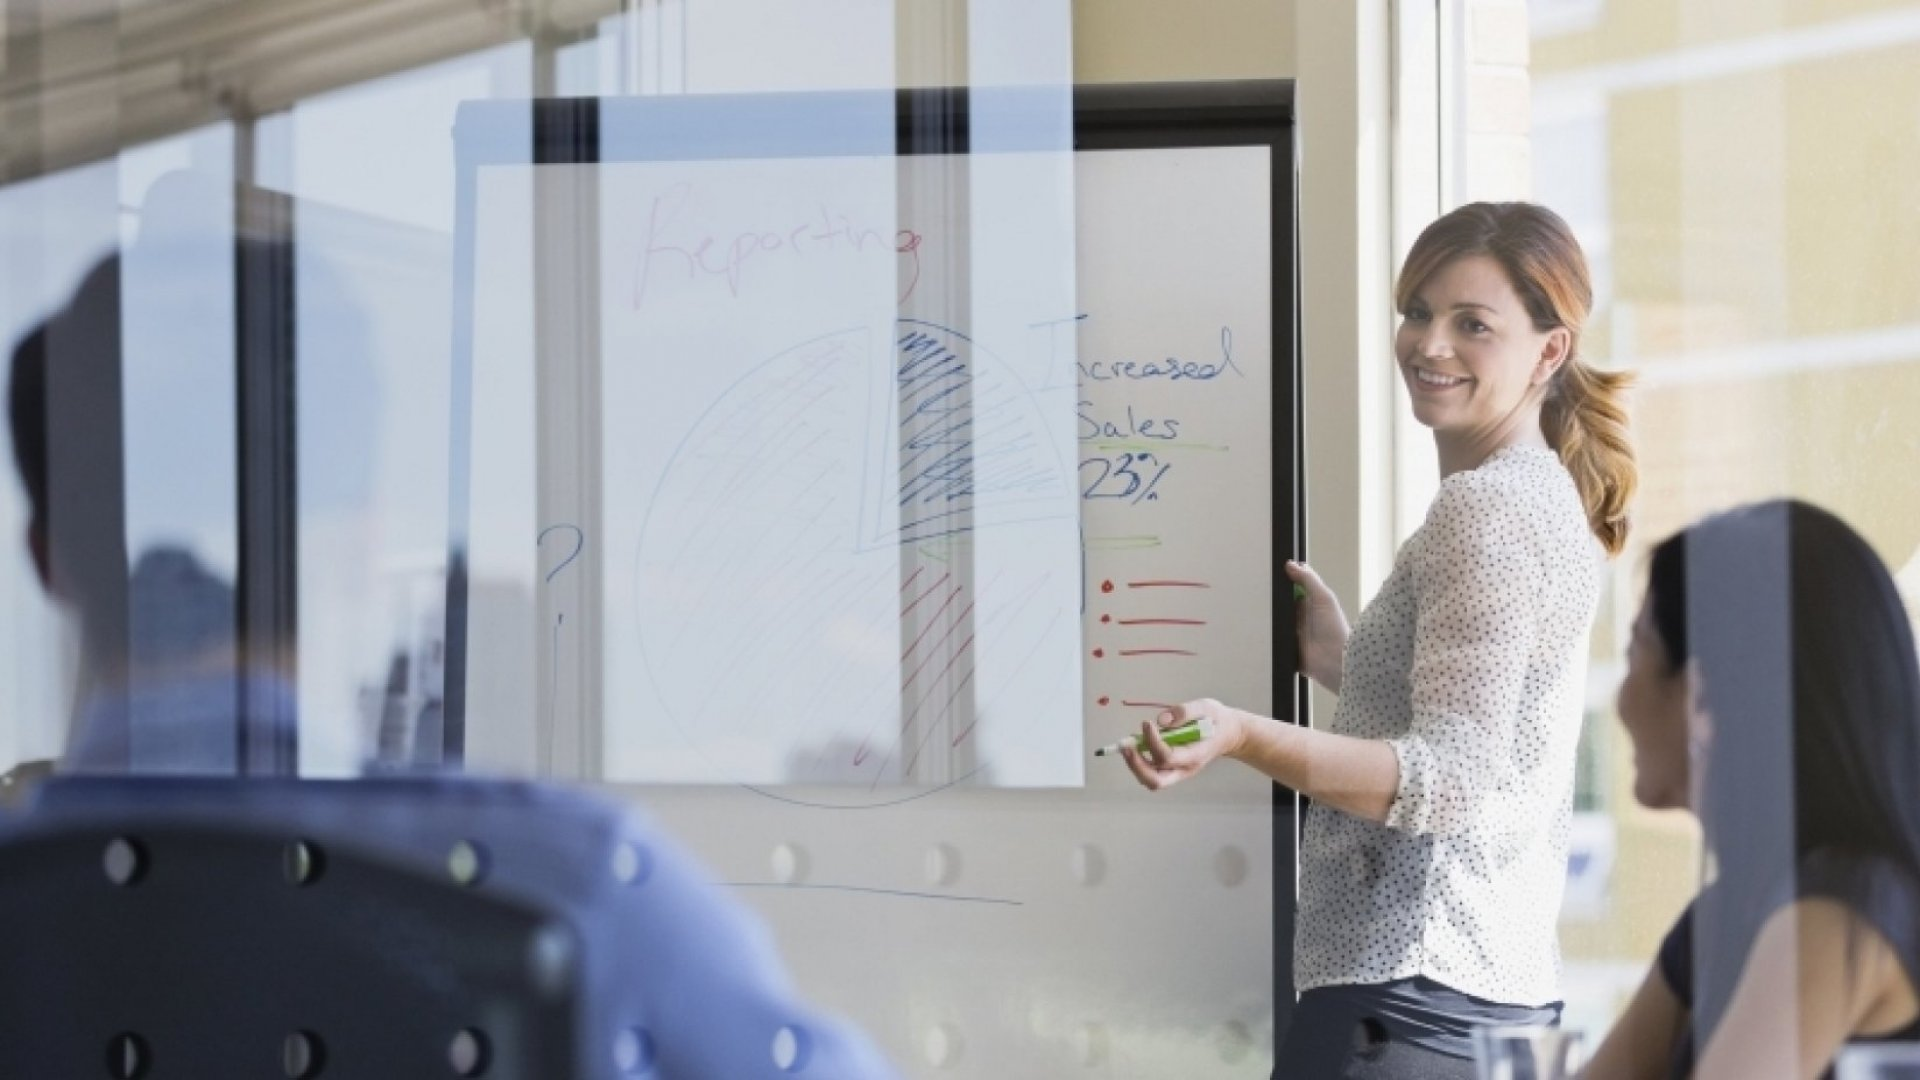 9 No-Fail Ways to Pitch Yourself Without Seeming Inauthentic